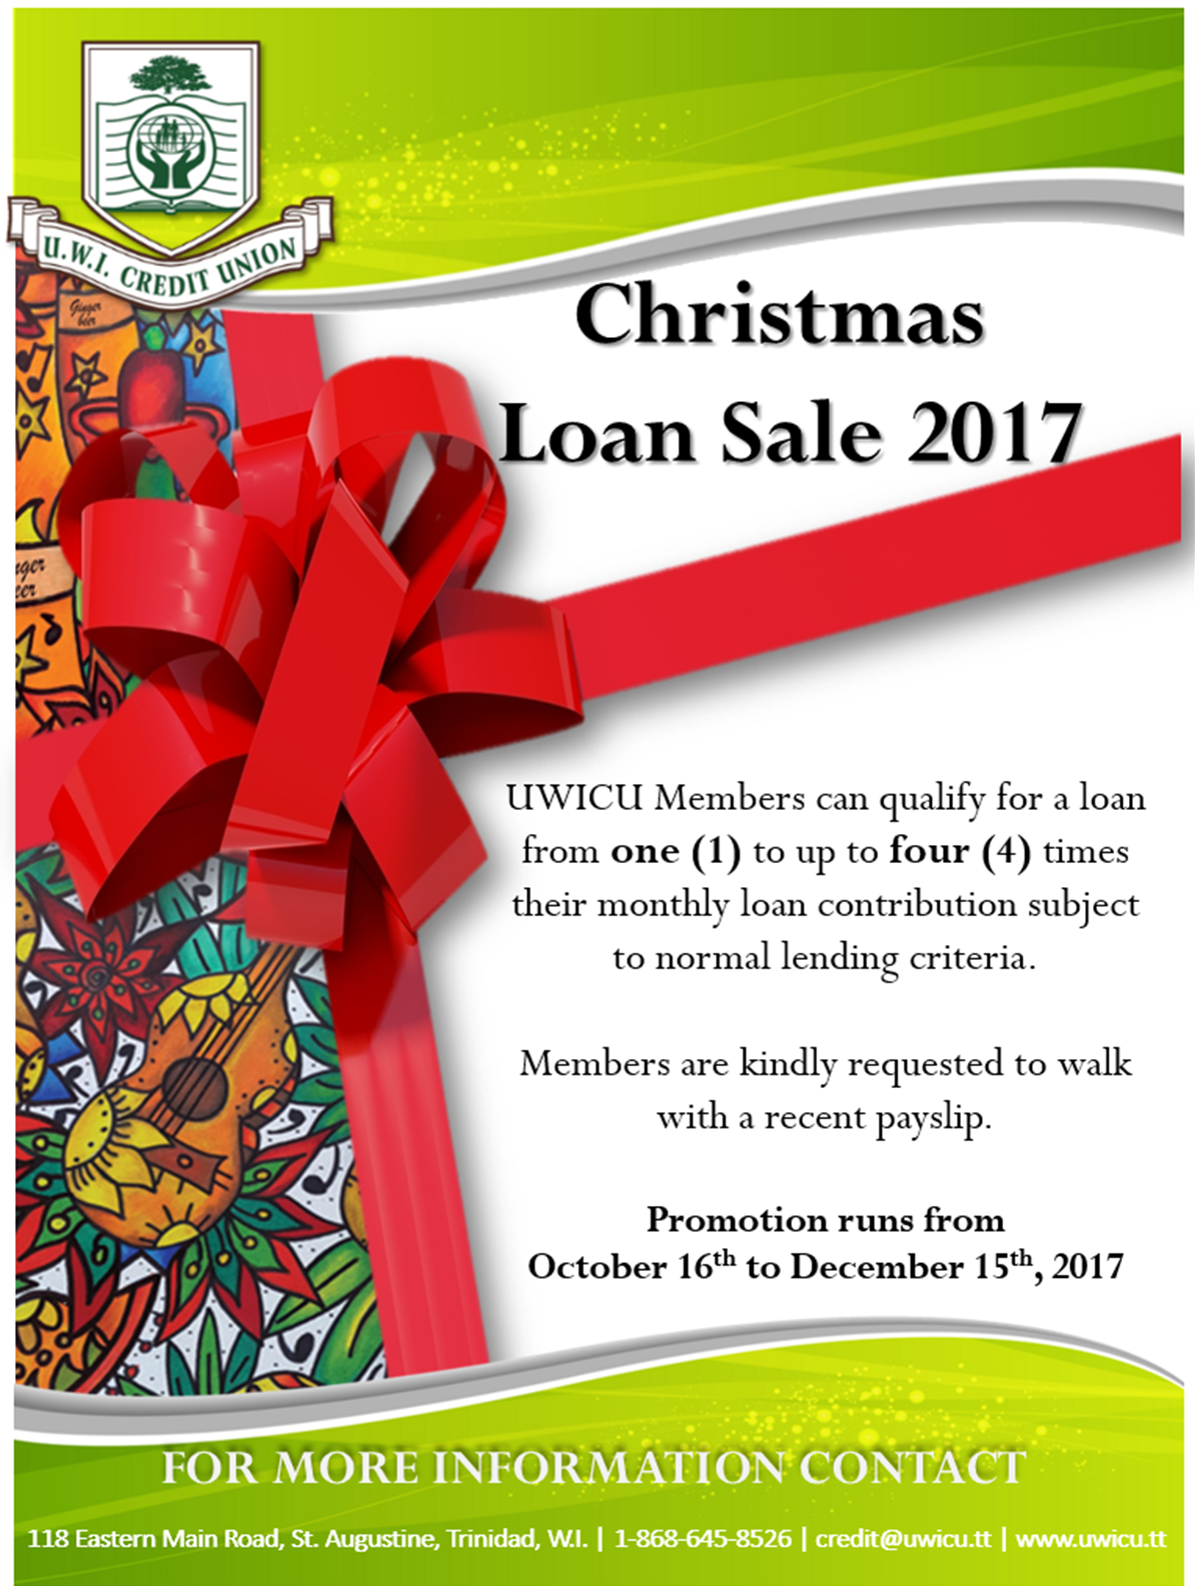 U.W.I. CREDIT UNION BURSARIES 2017/2018 | UWI Credit Union